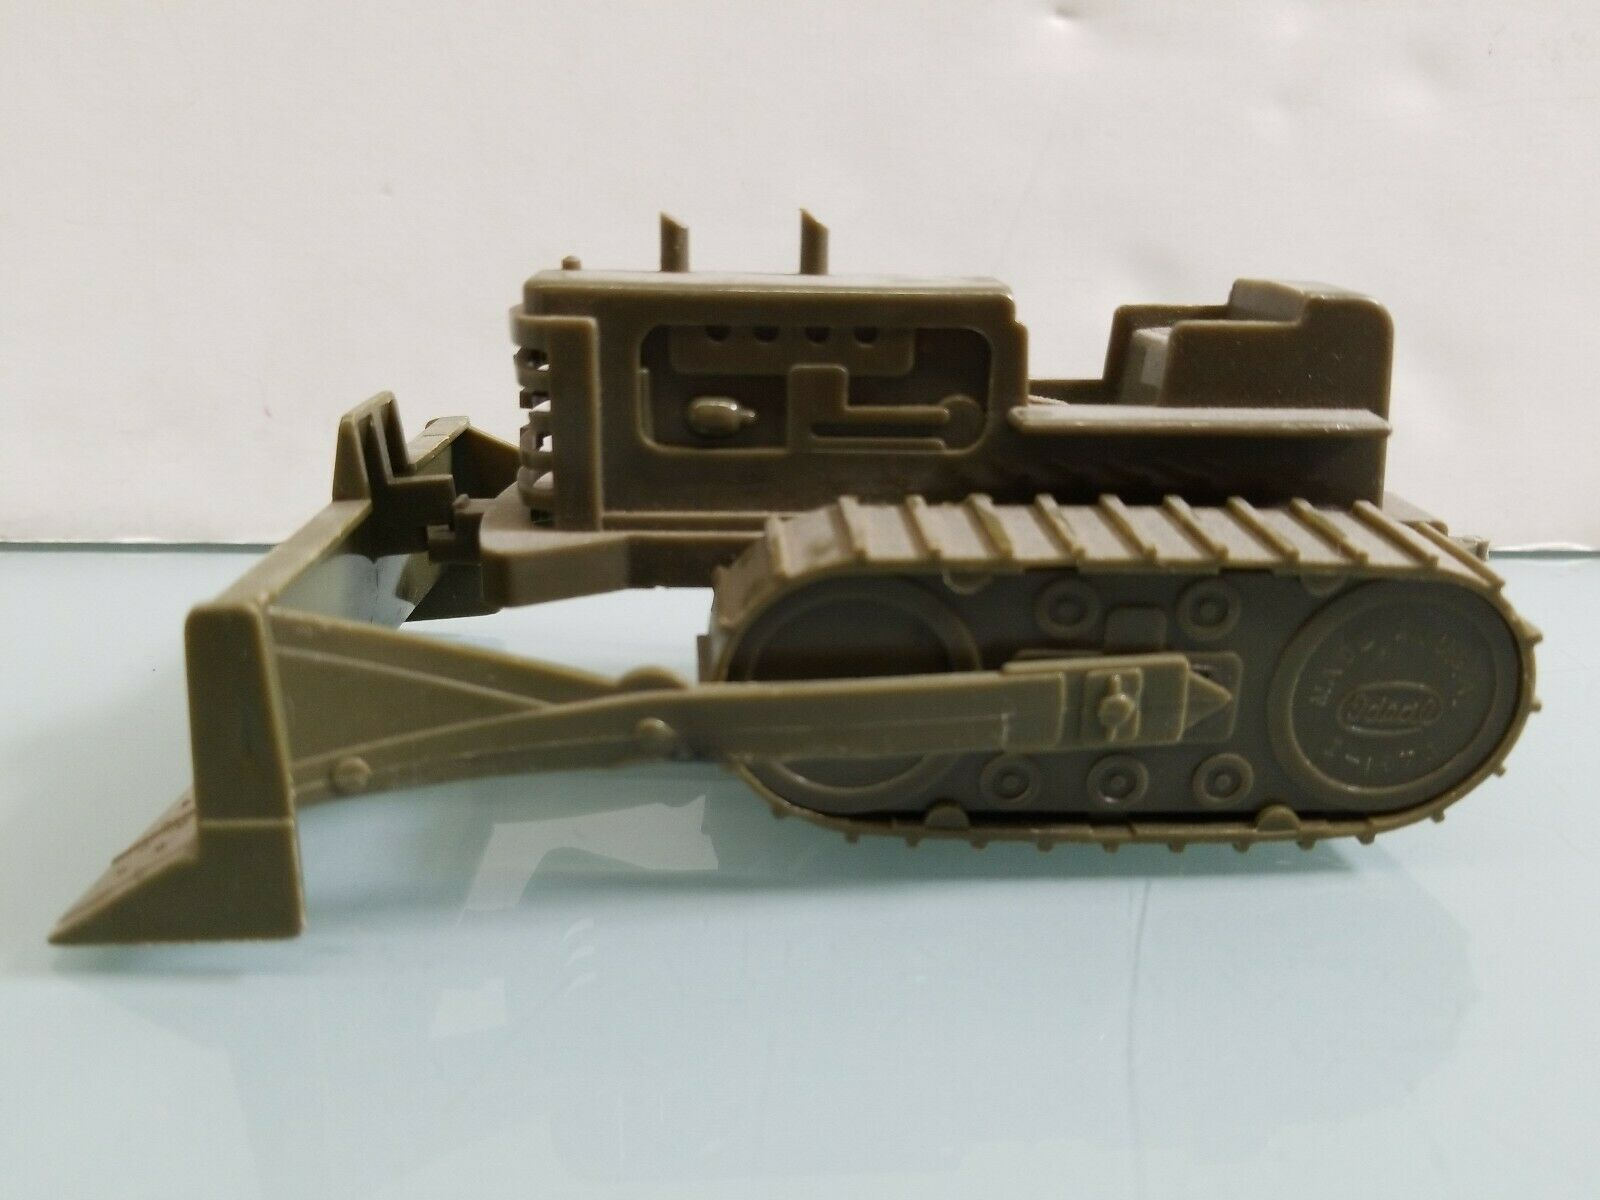 Ideal Toy U.S.Army Corps of Engineers Bulldozer Plastic Molded